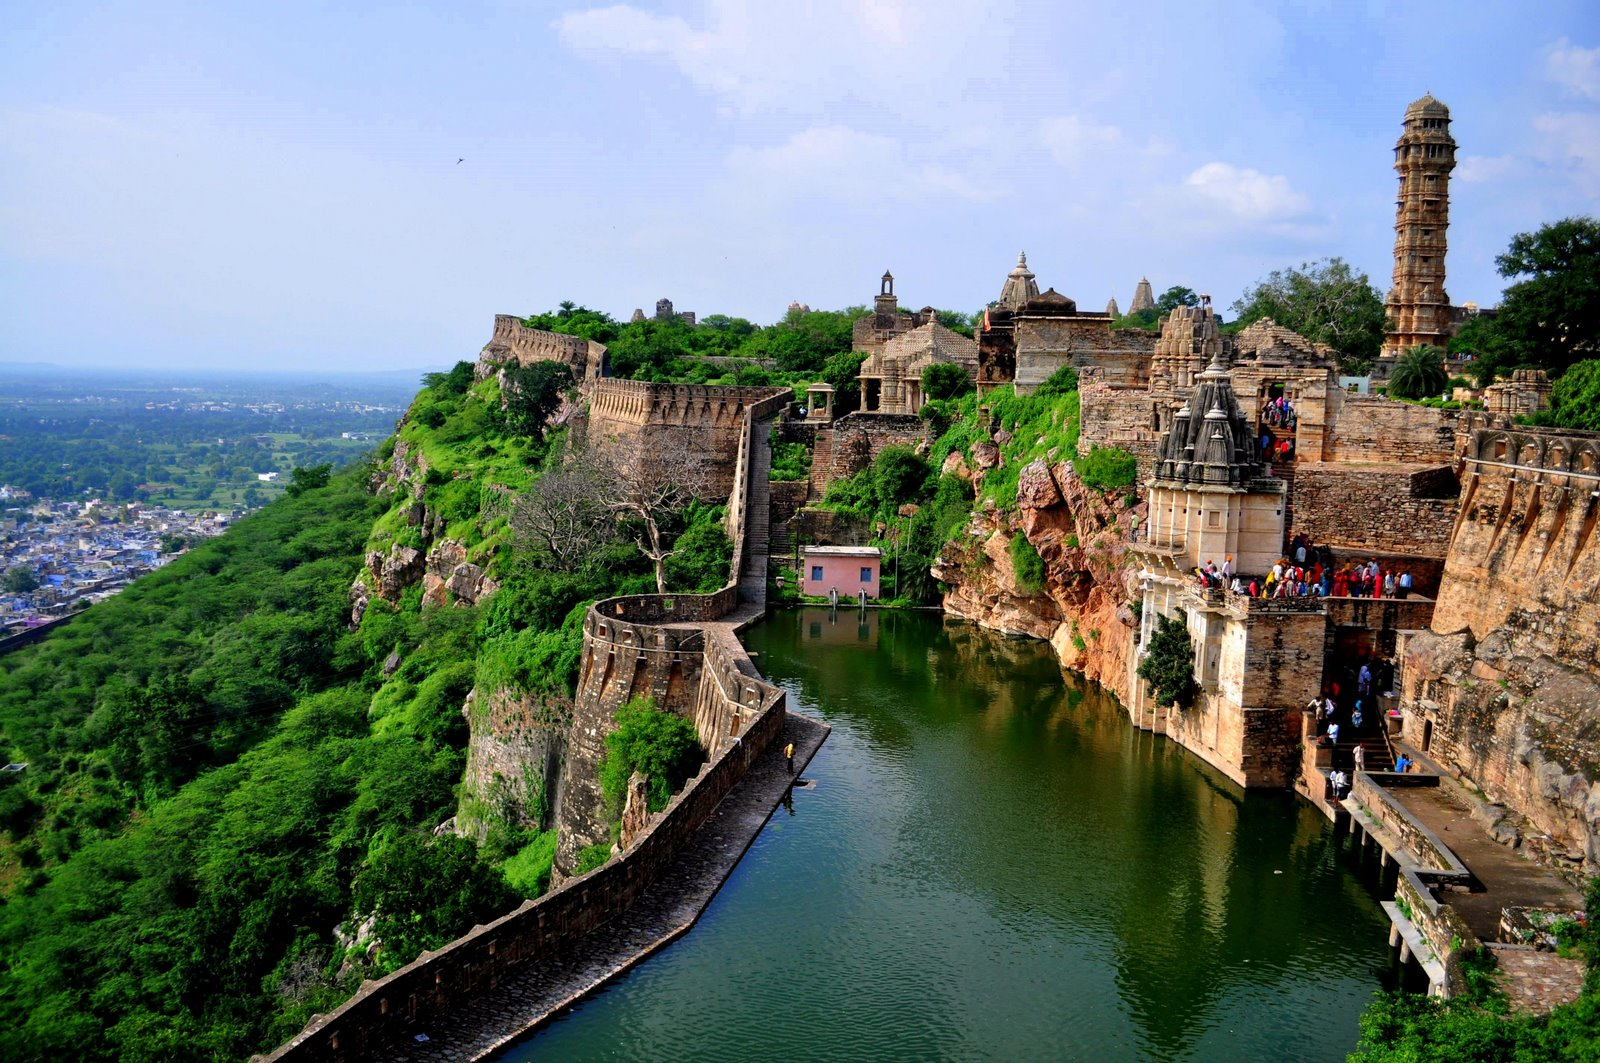 rajasthan tourism, rajasthan tourist places, best tourist places in rajasthan, historical places in rajasthan